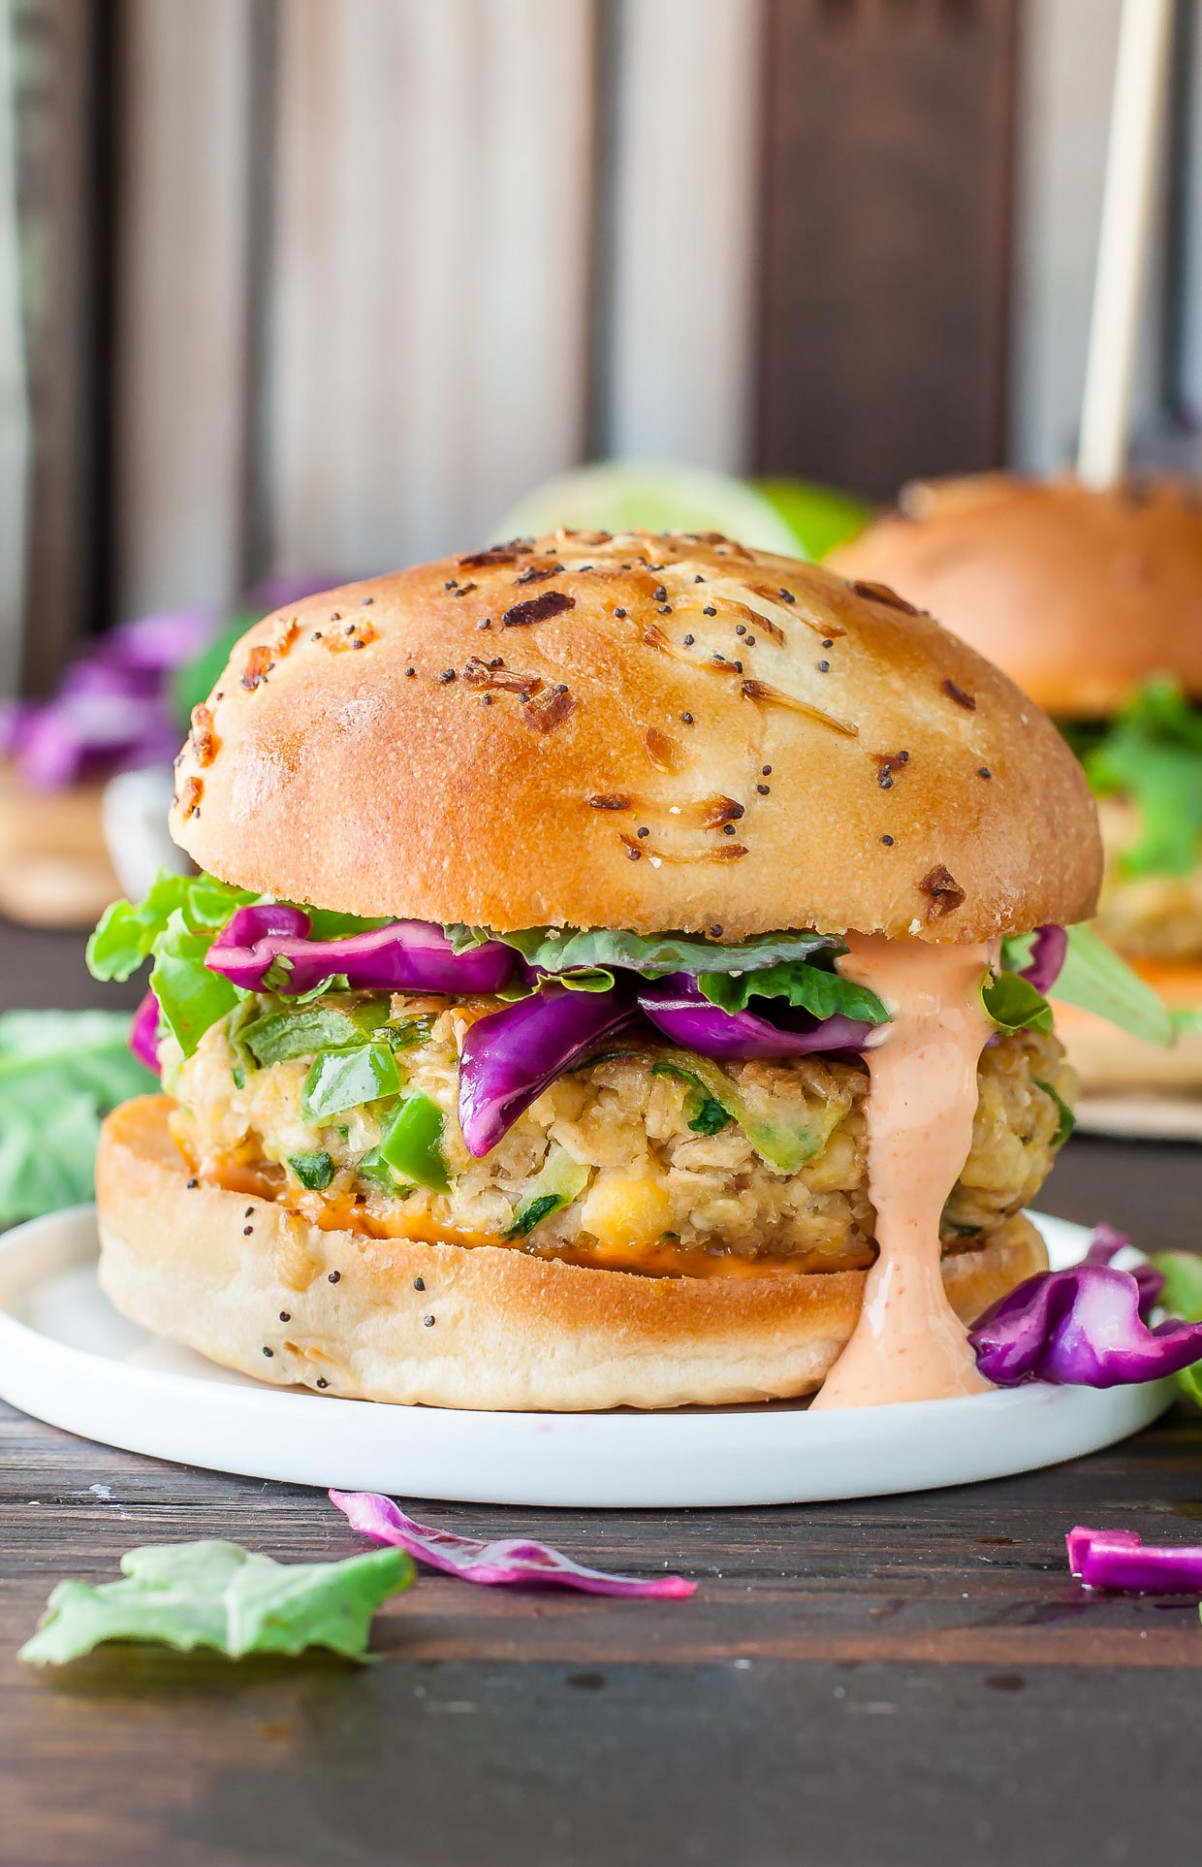 Spicy Chickpea Veggie Burgers with Jalapeño and Zucchini - recipe vegetarian hamburger patties